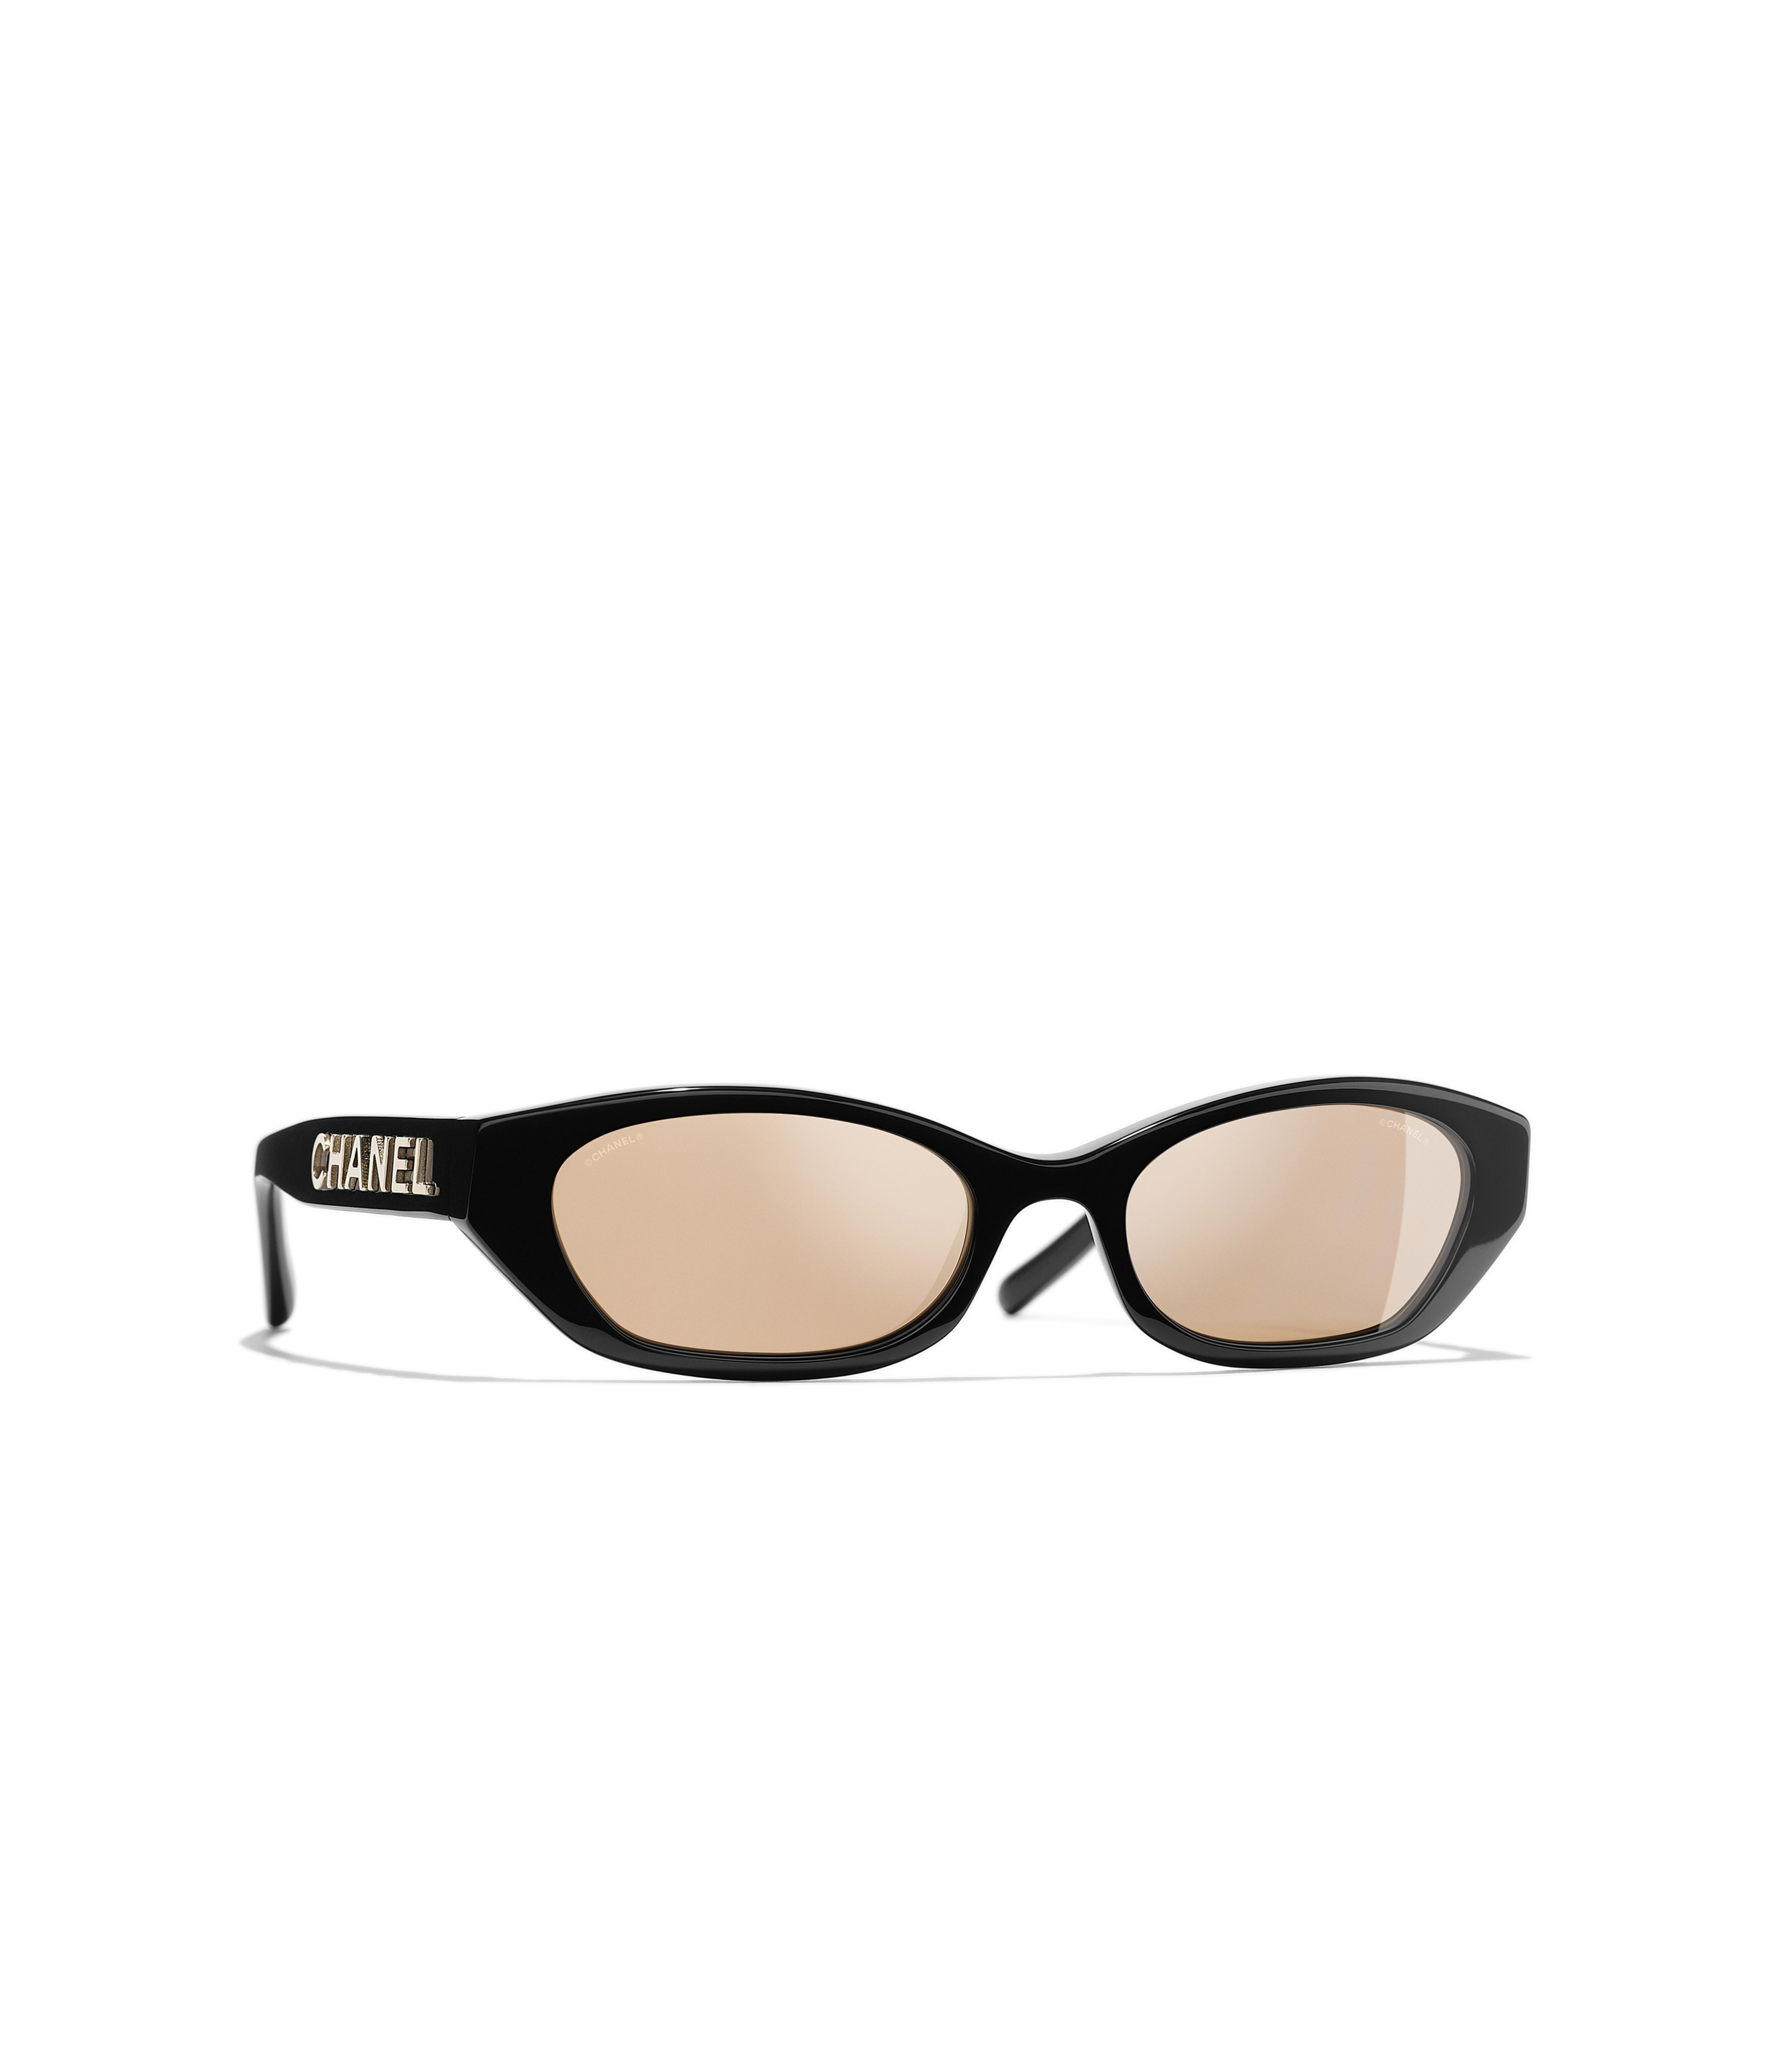 ff32095029084 Chanel Pink Sunglasses 2017 - Image Of Glasses